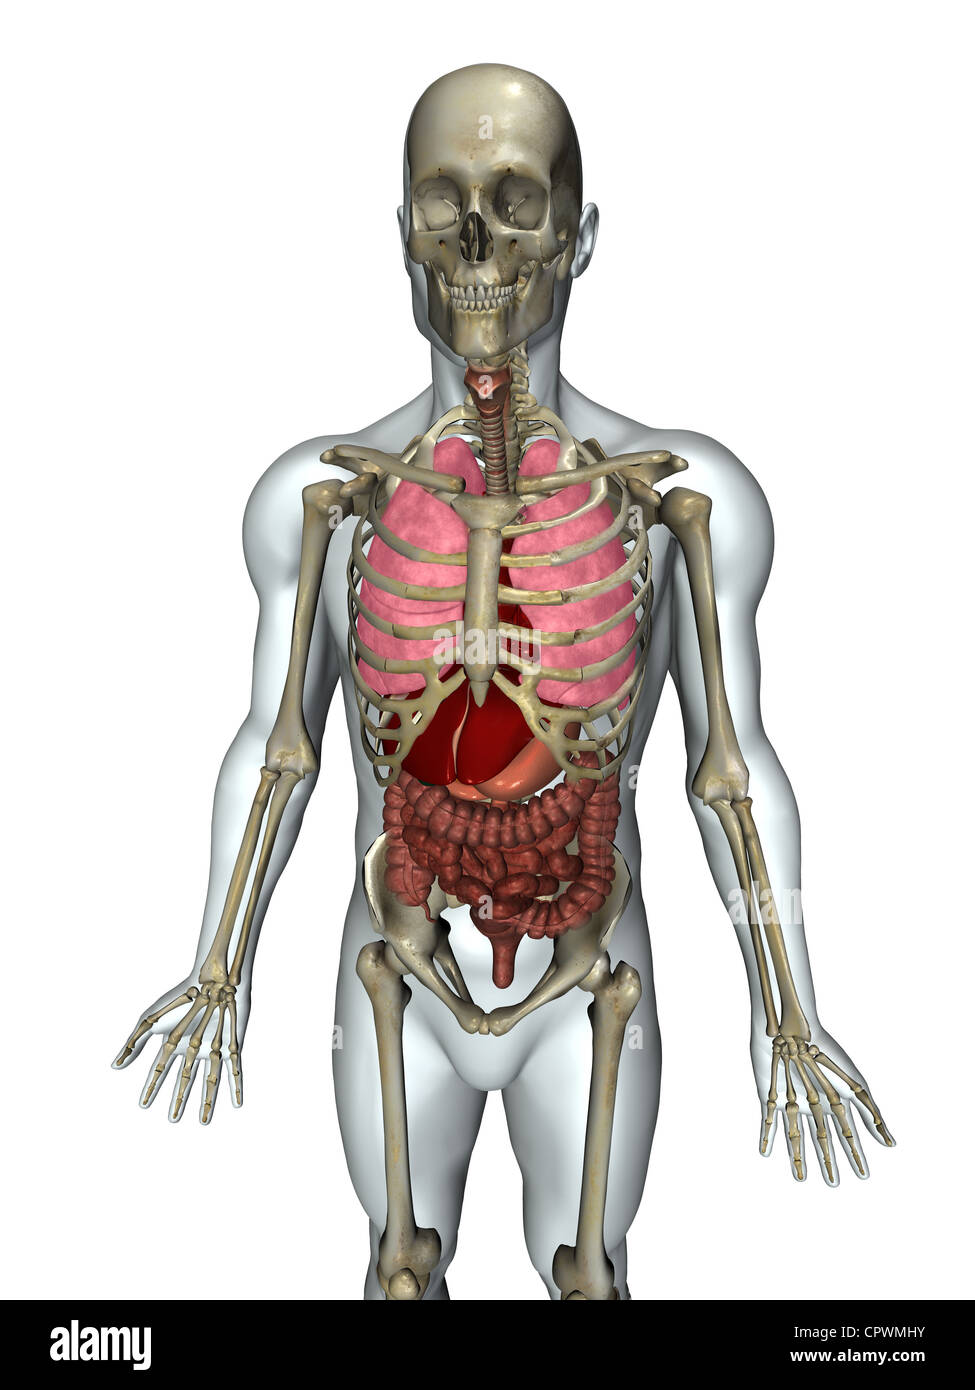 Anatomical Illustration Of The Human Body Showing The Major Organ